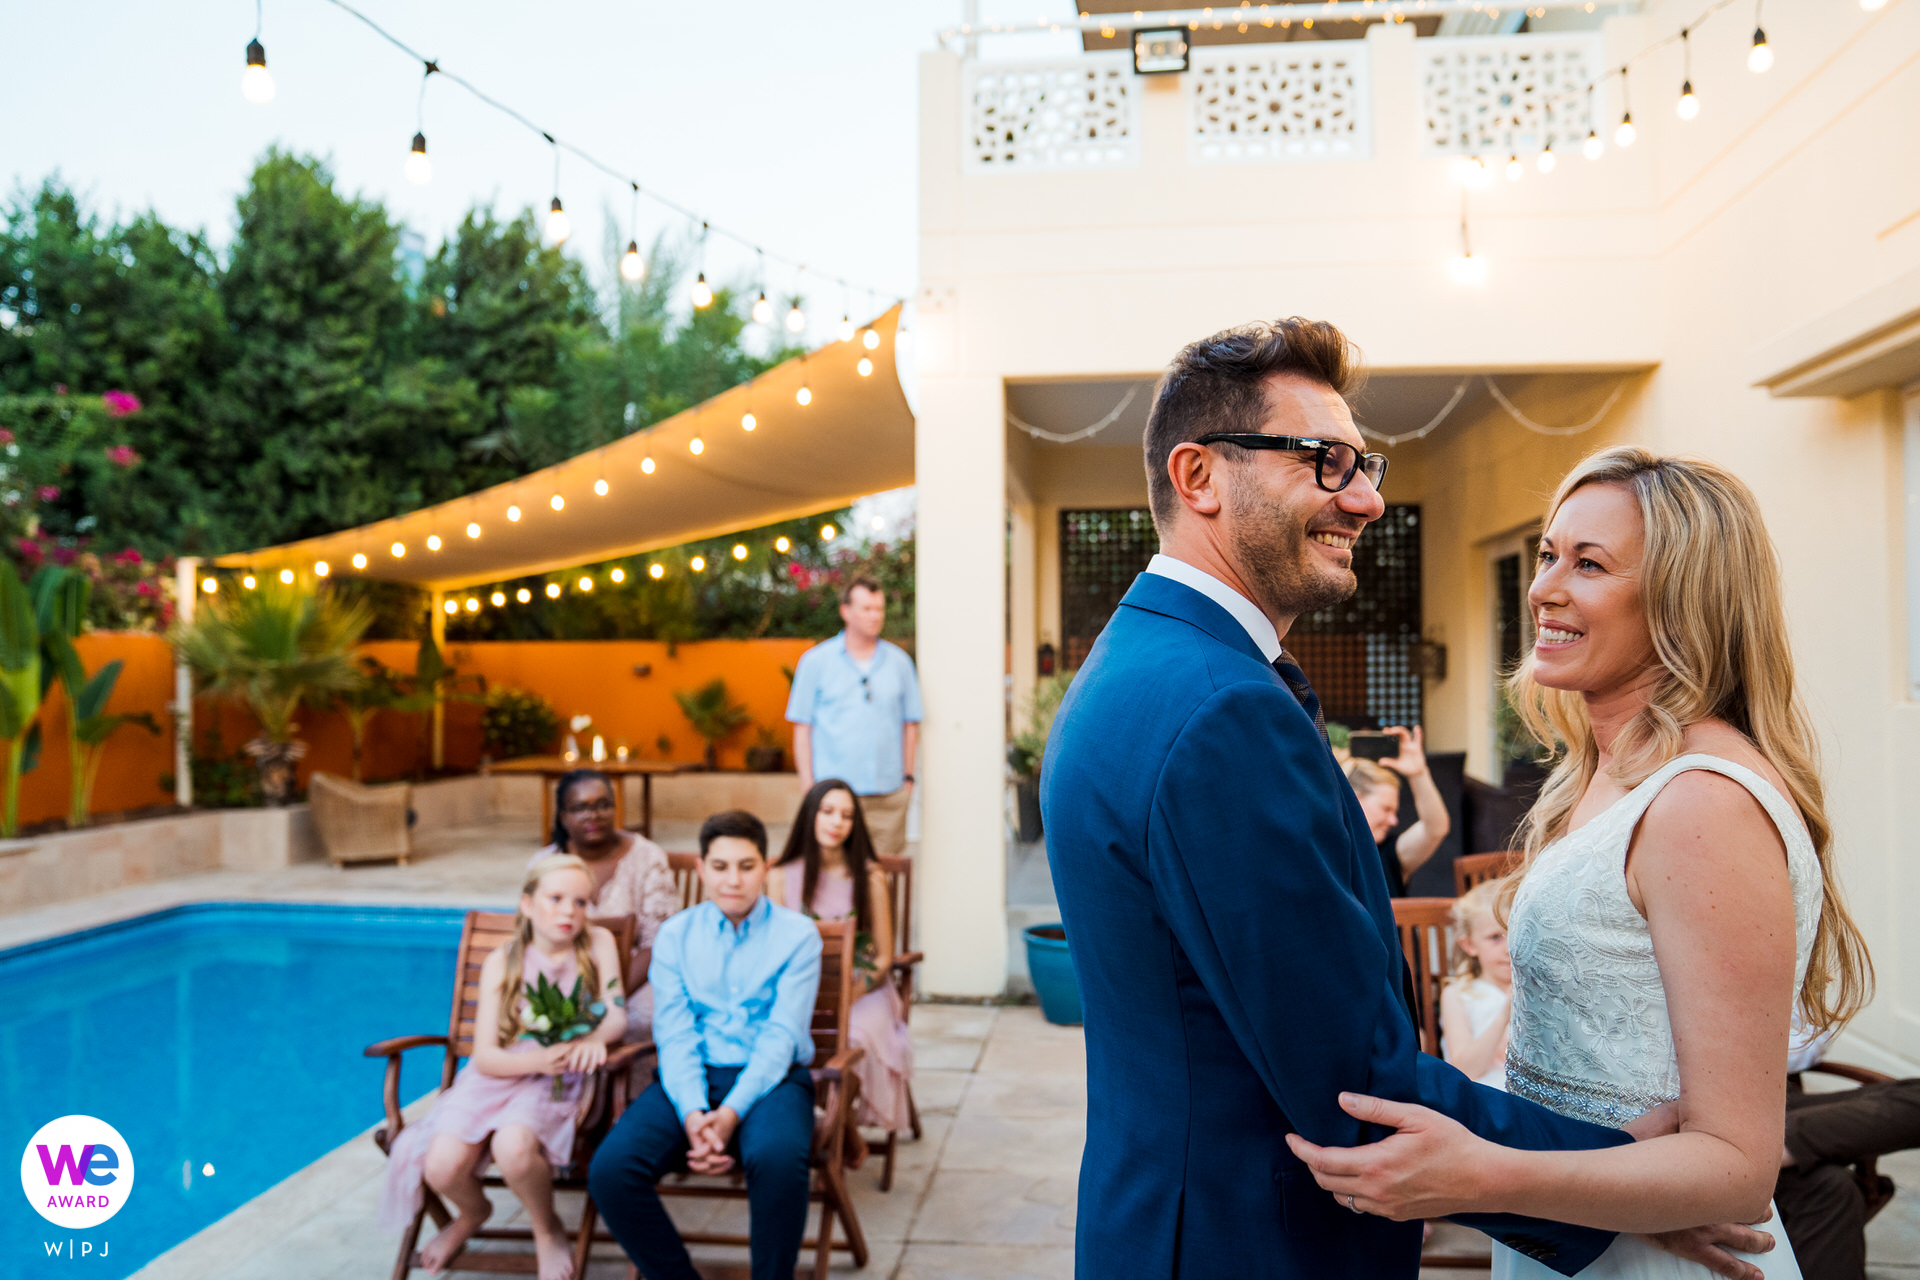 Backyard Villa - Dubai, UAE Elopement Photos | The bride and groom laughing at a joke shared by the wedding celebrant